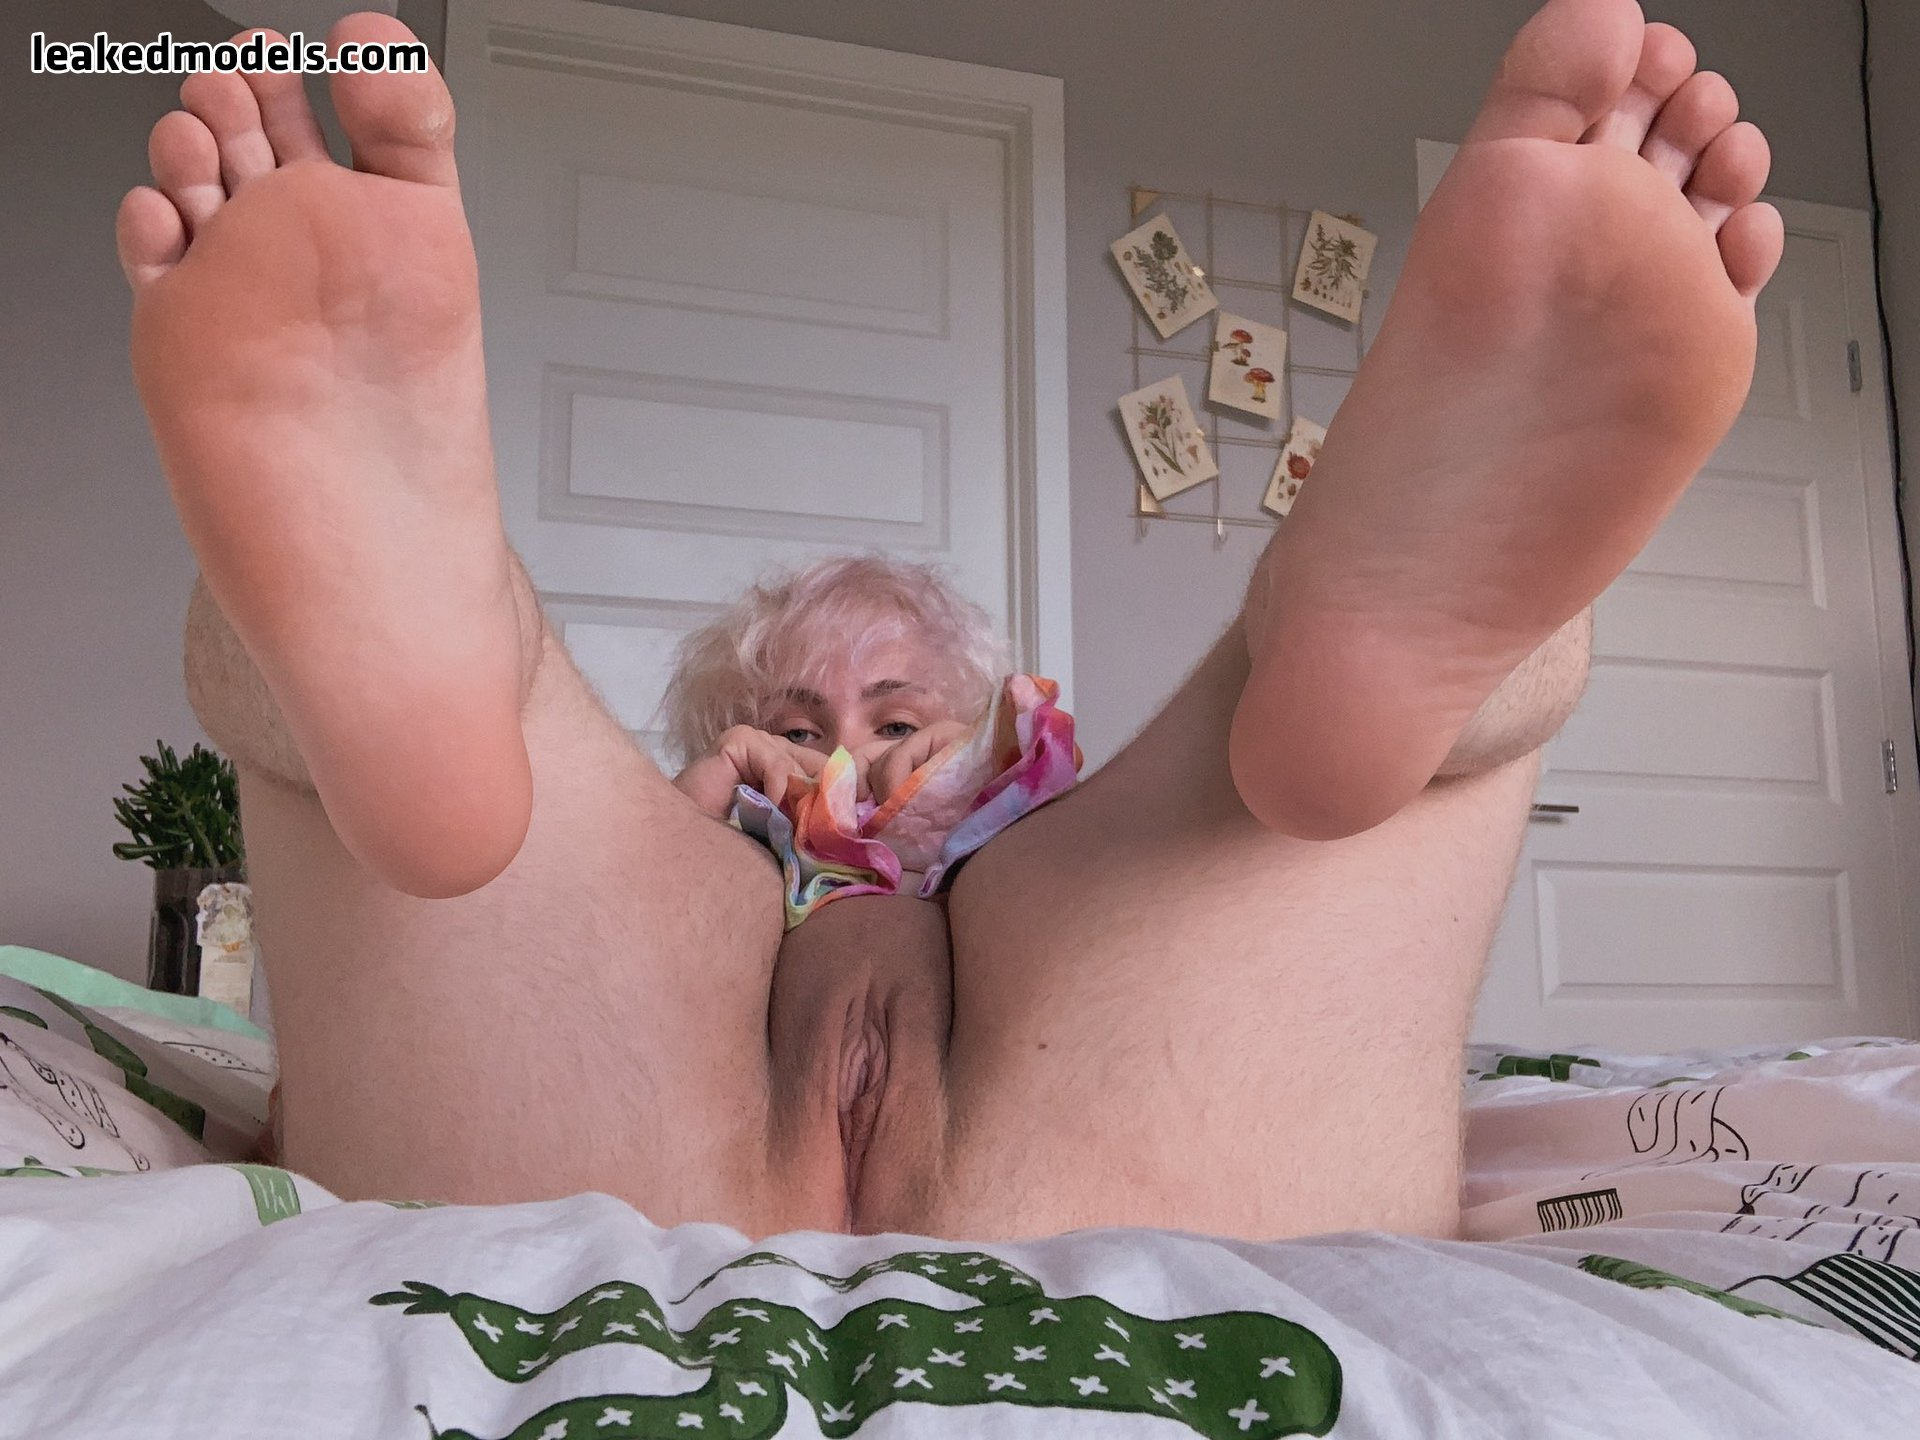 softlacex OnlyFans Nude Leaks (30 Photos)